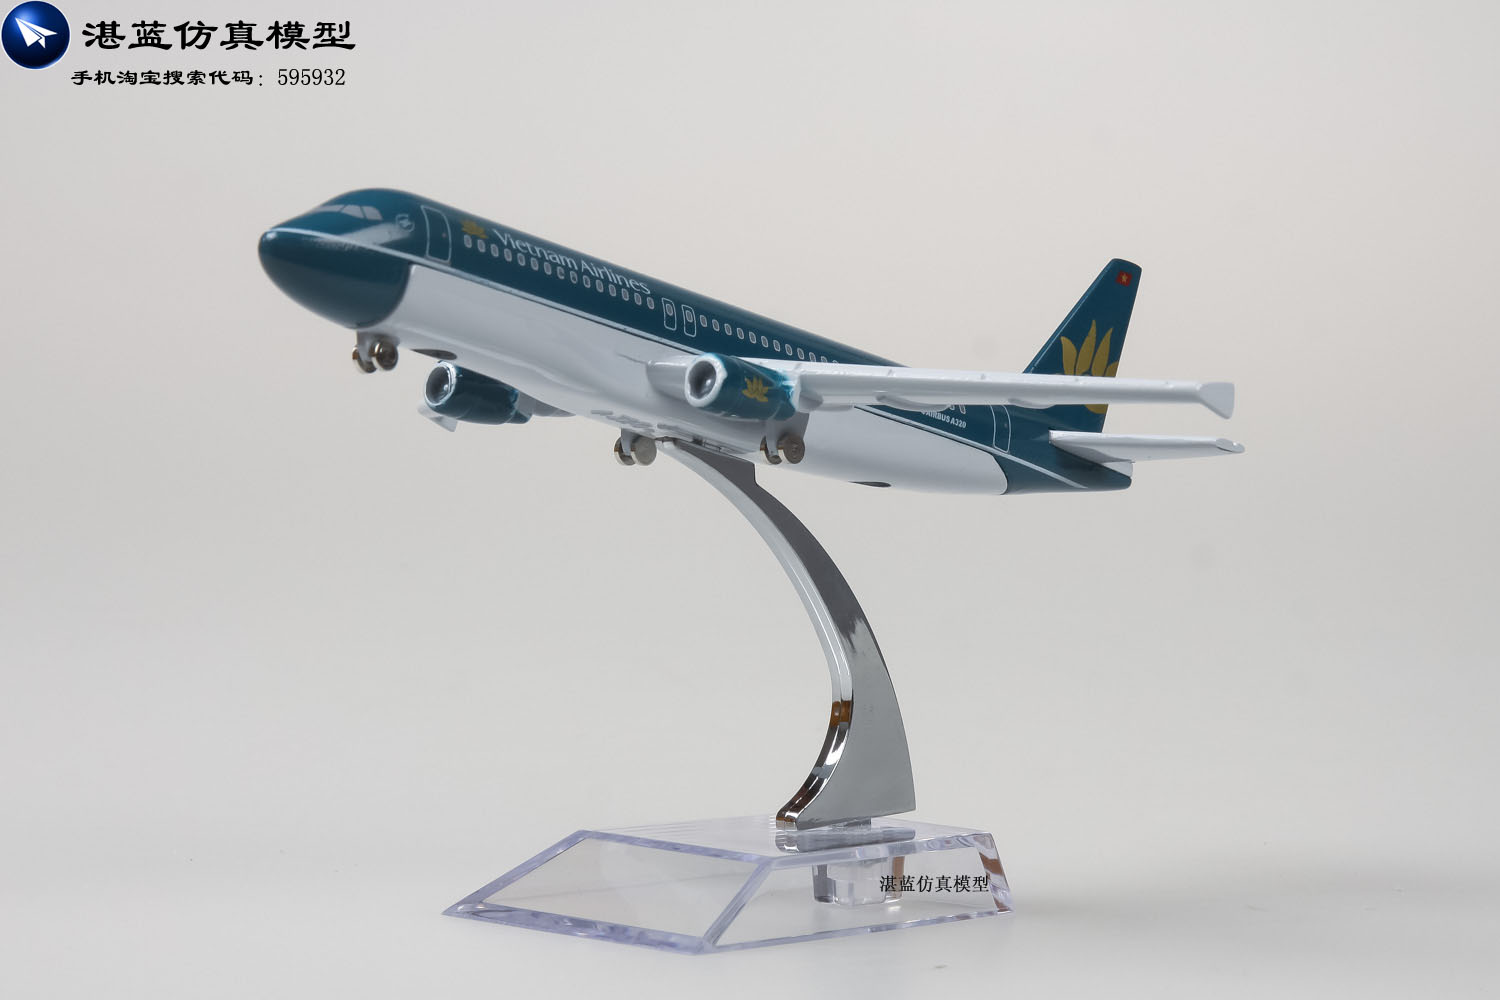 1/400 Scale Vietnam Airlines Airbus 320 (16cm Length) Diecast Metal Plane Model Toy New In Box For Collection/Gift/Kids(China (Mainland))